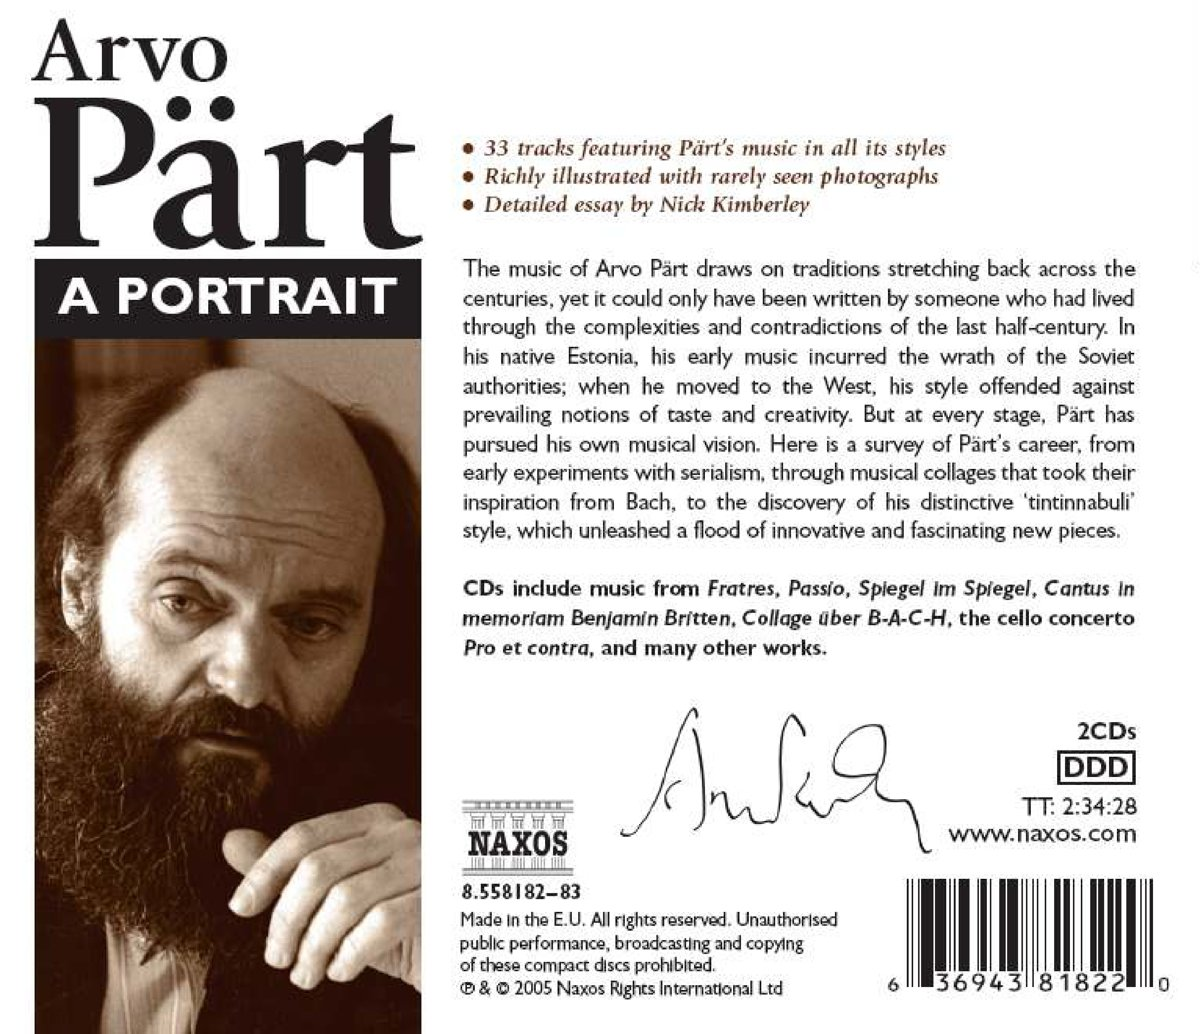 arvo part arvo part a portrait com music